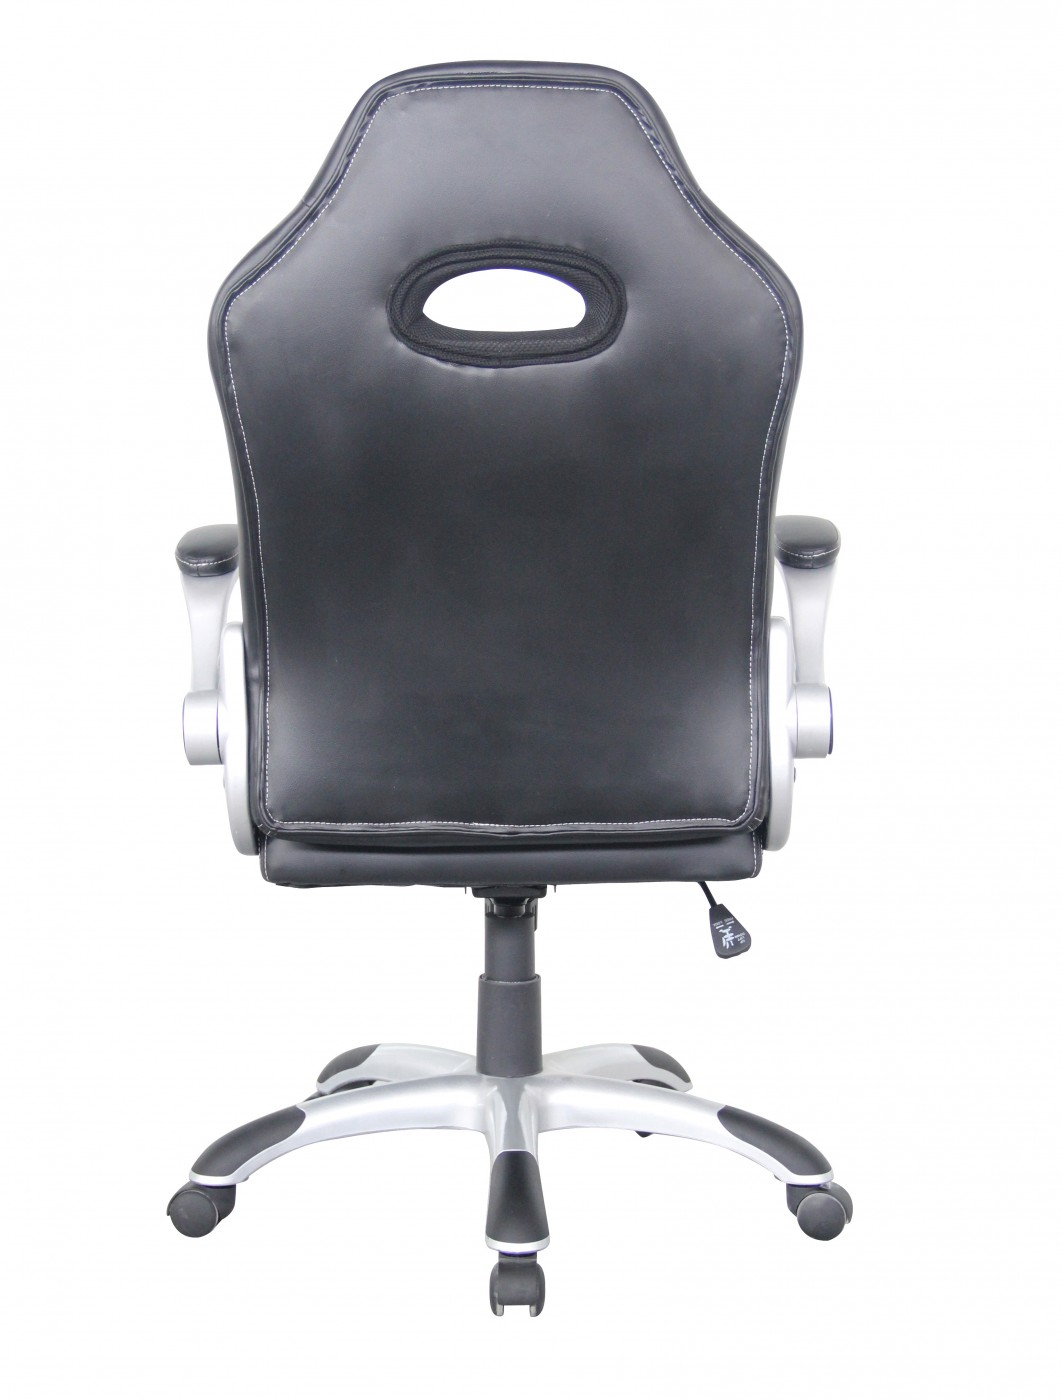 Talladega Racing Style Office Chair AOC8211BLK 121 Office Furniture